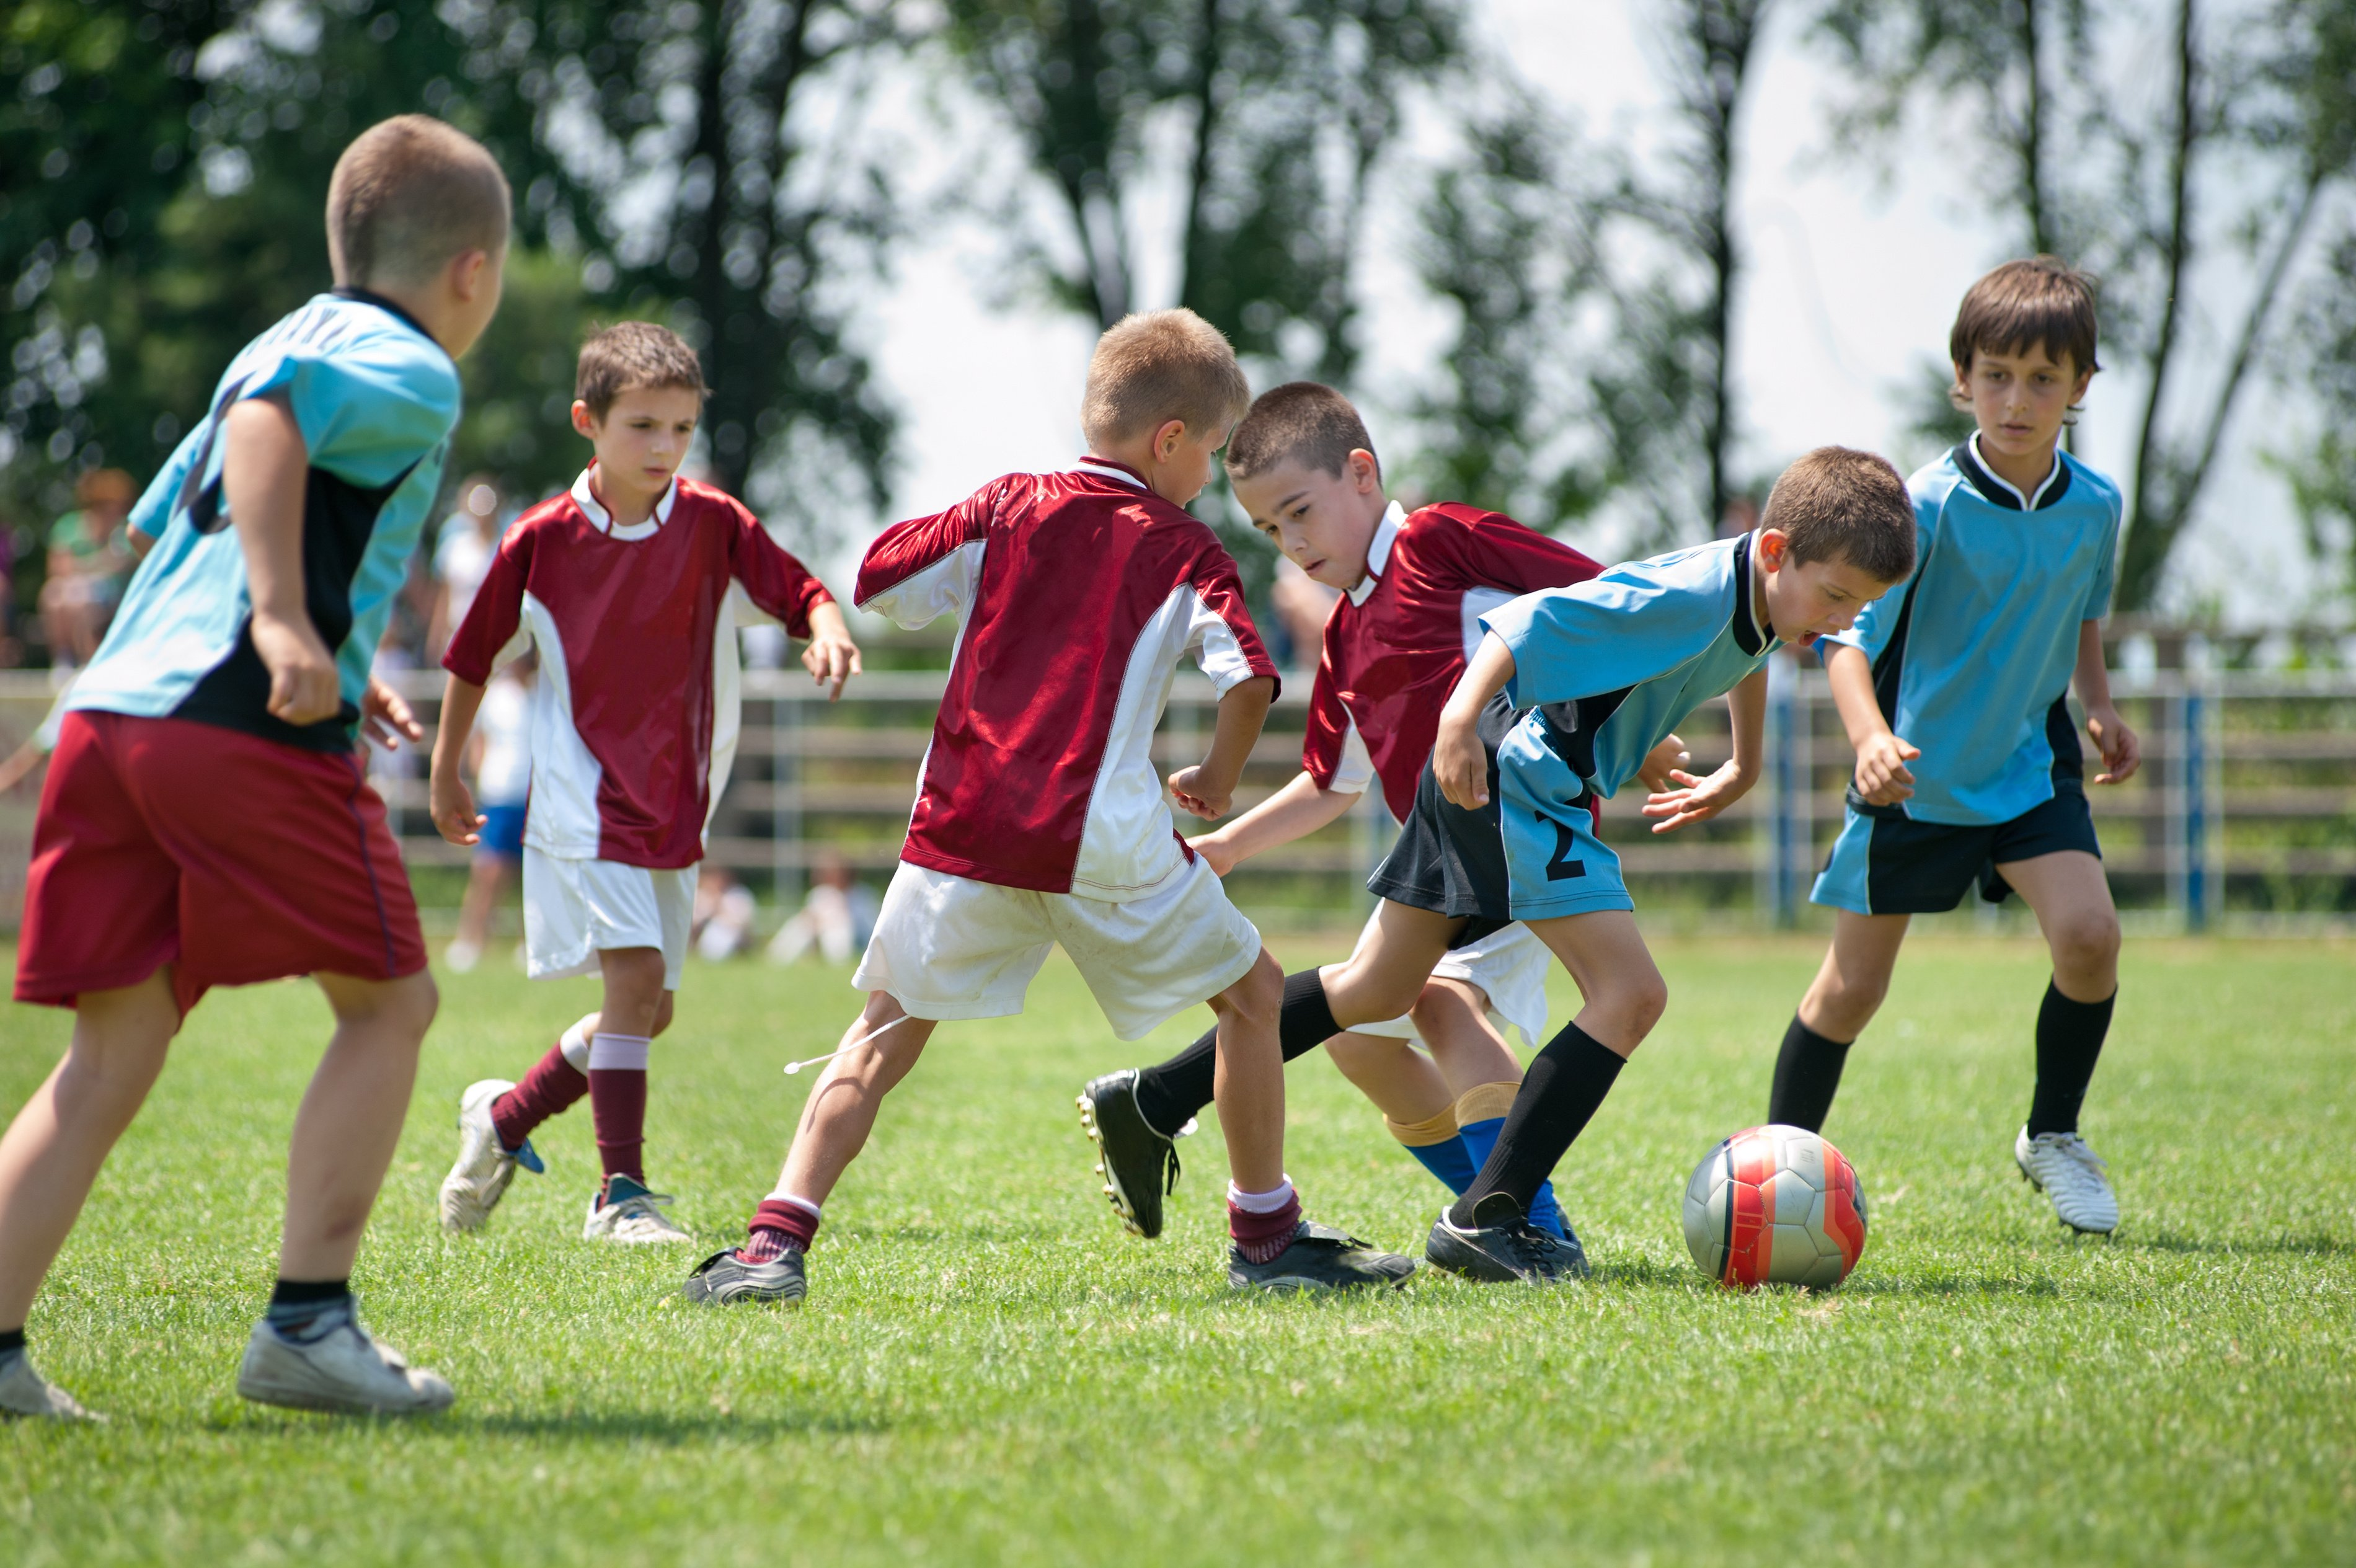 Sports Related Foot Injuries in Danvers, MA